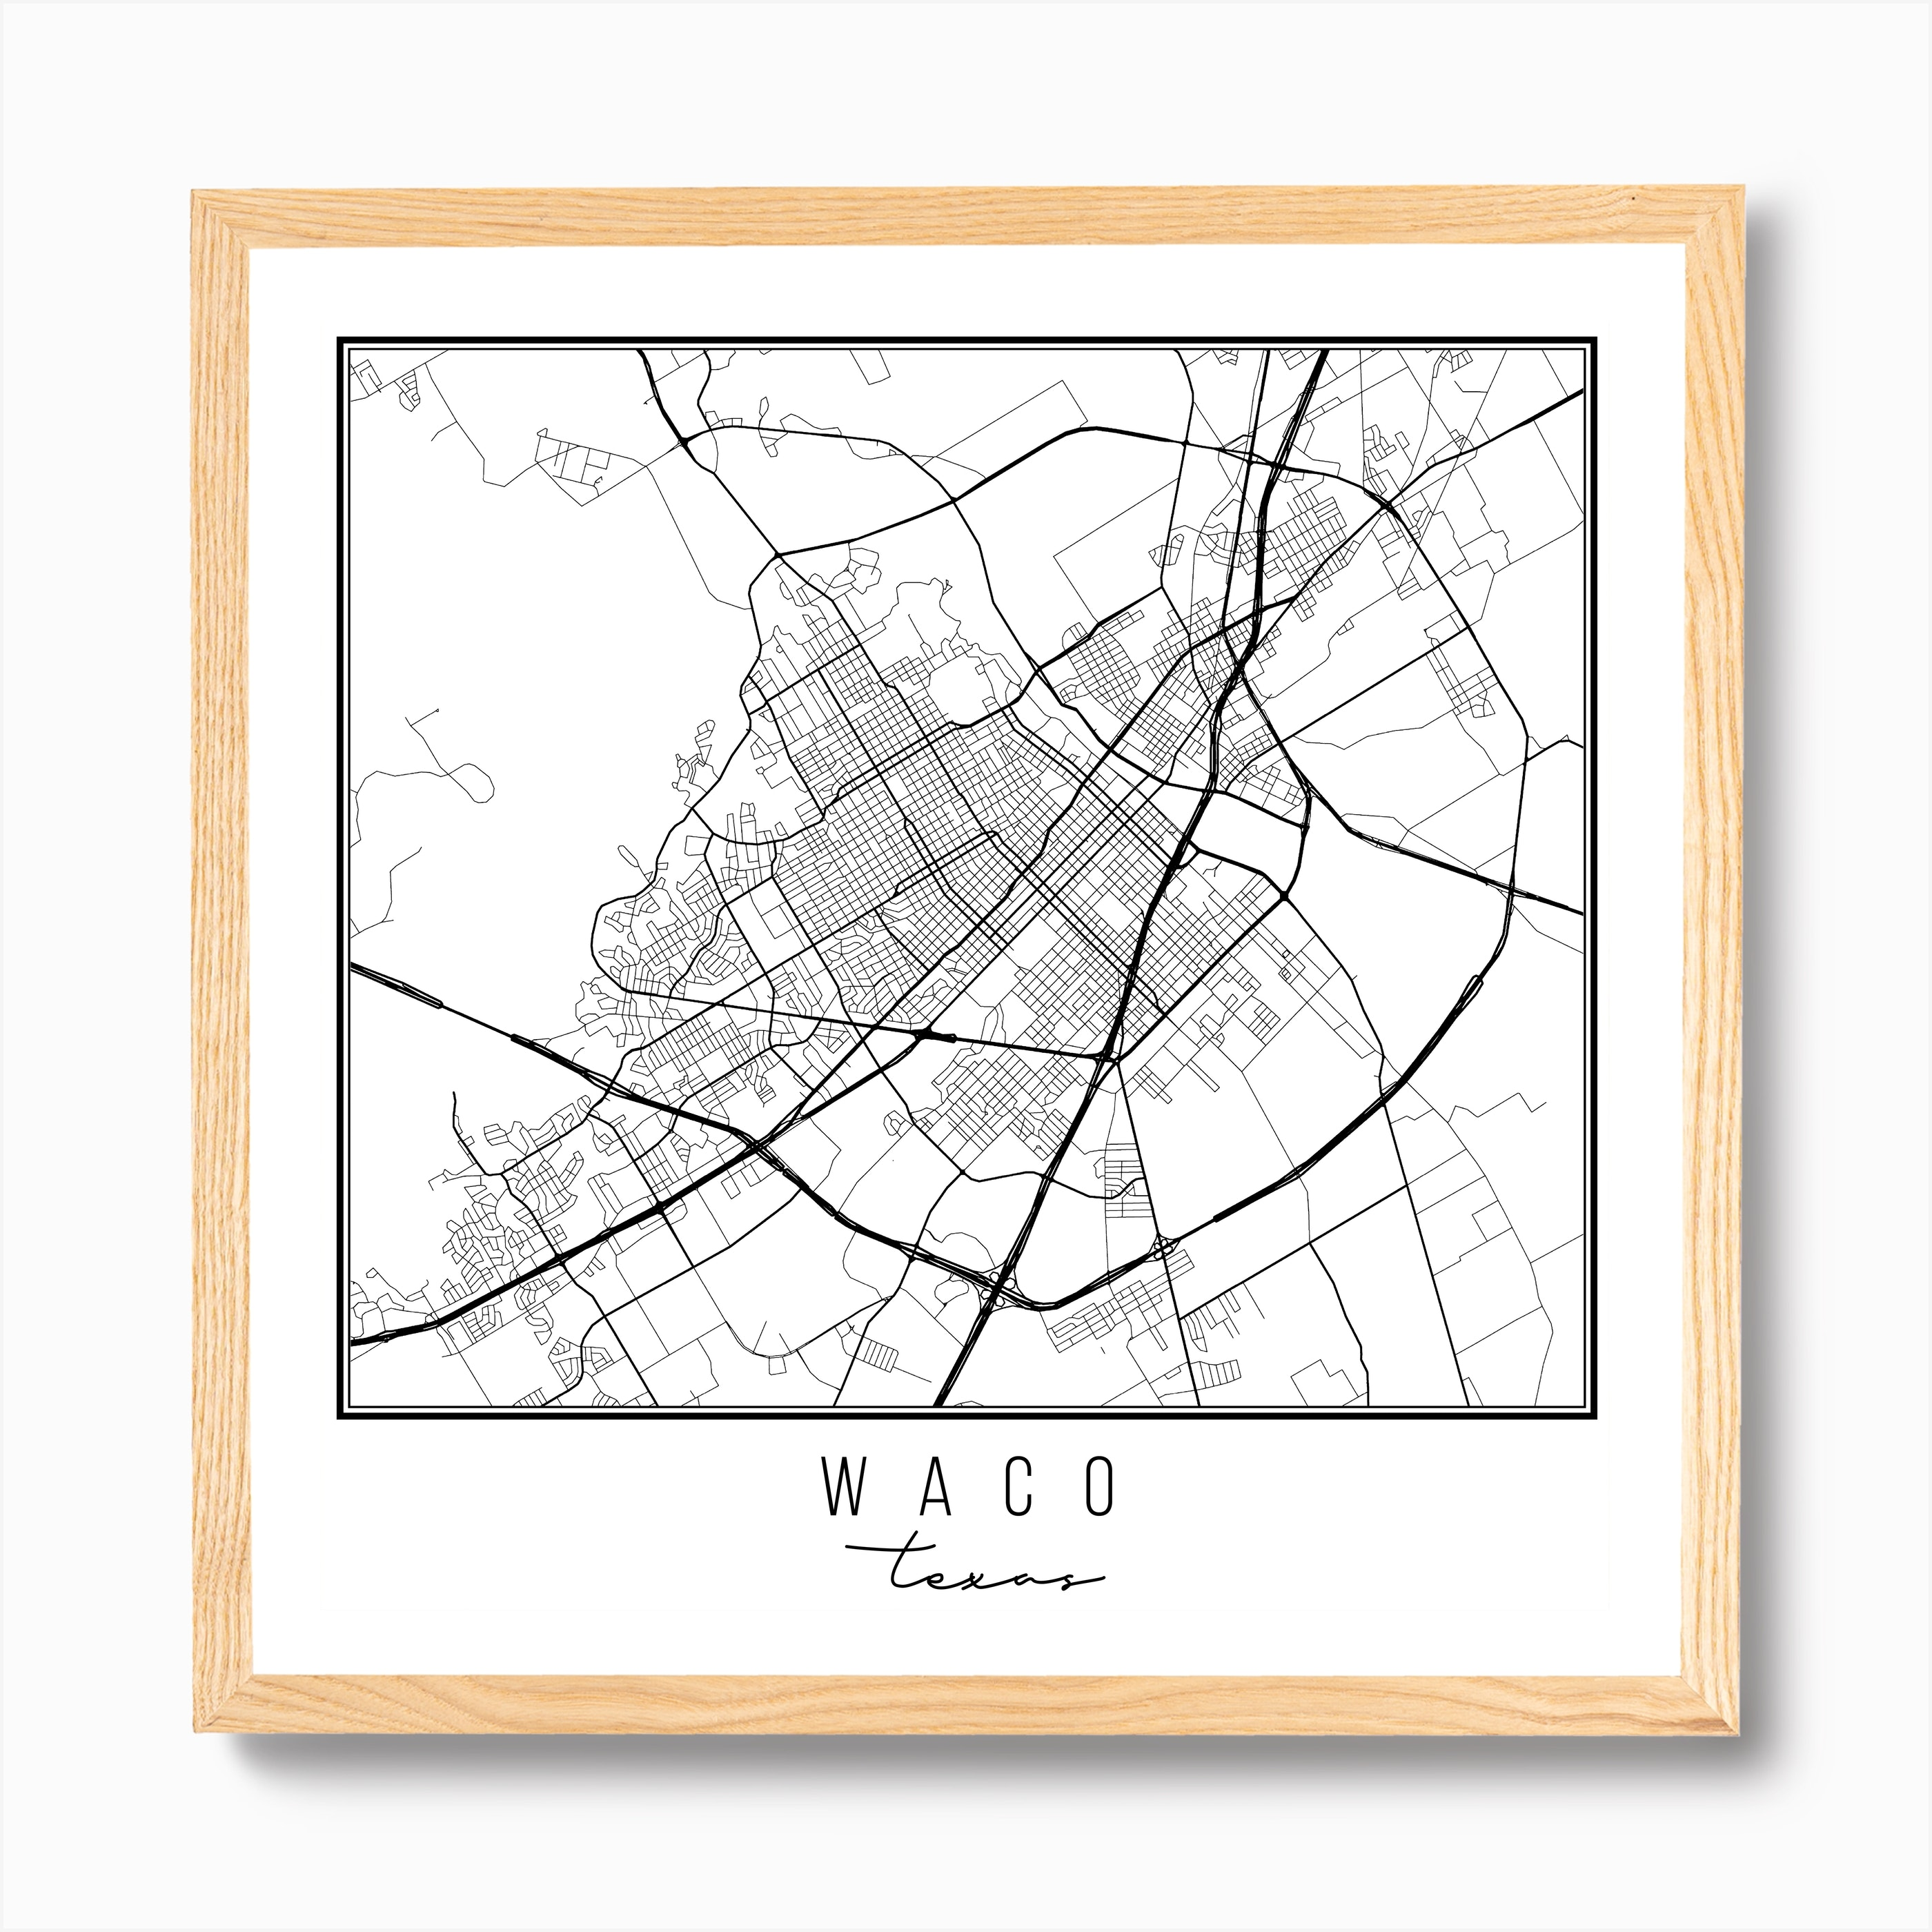 Waco Texas Street Map Art Print By Typologie Paper Co Fy